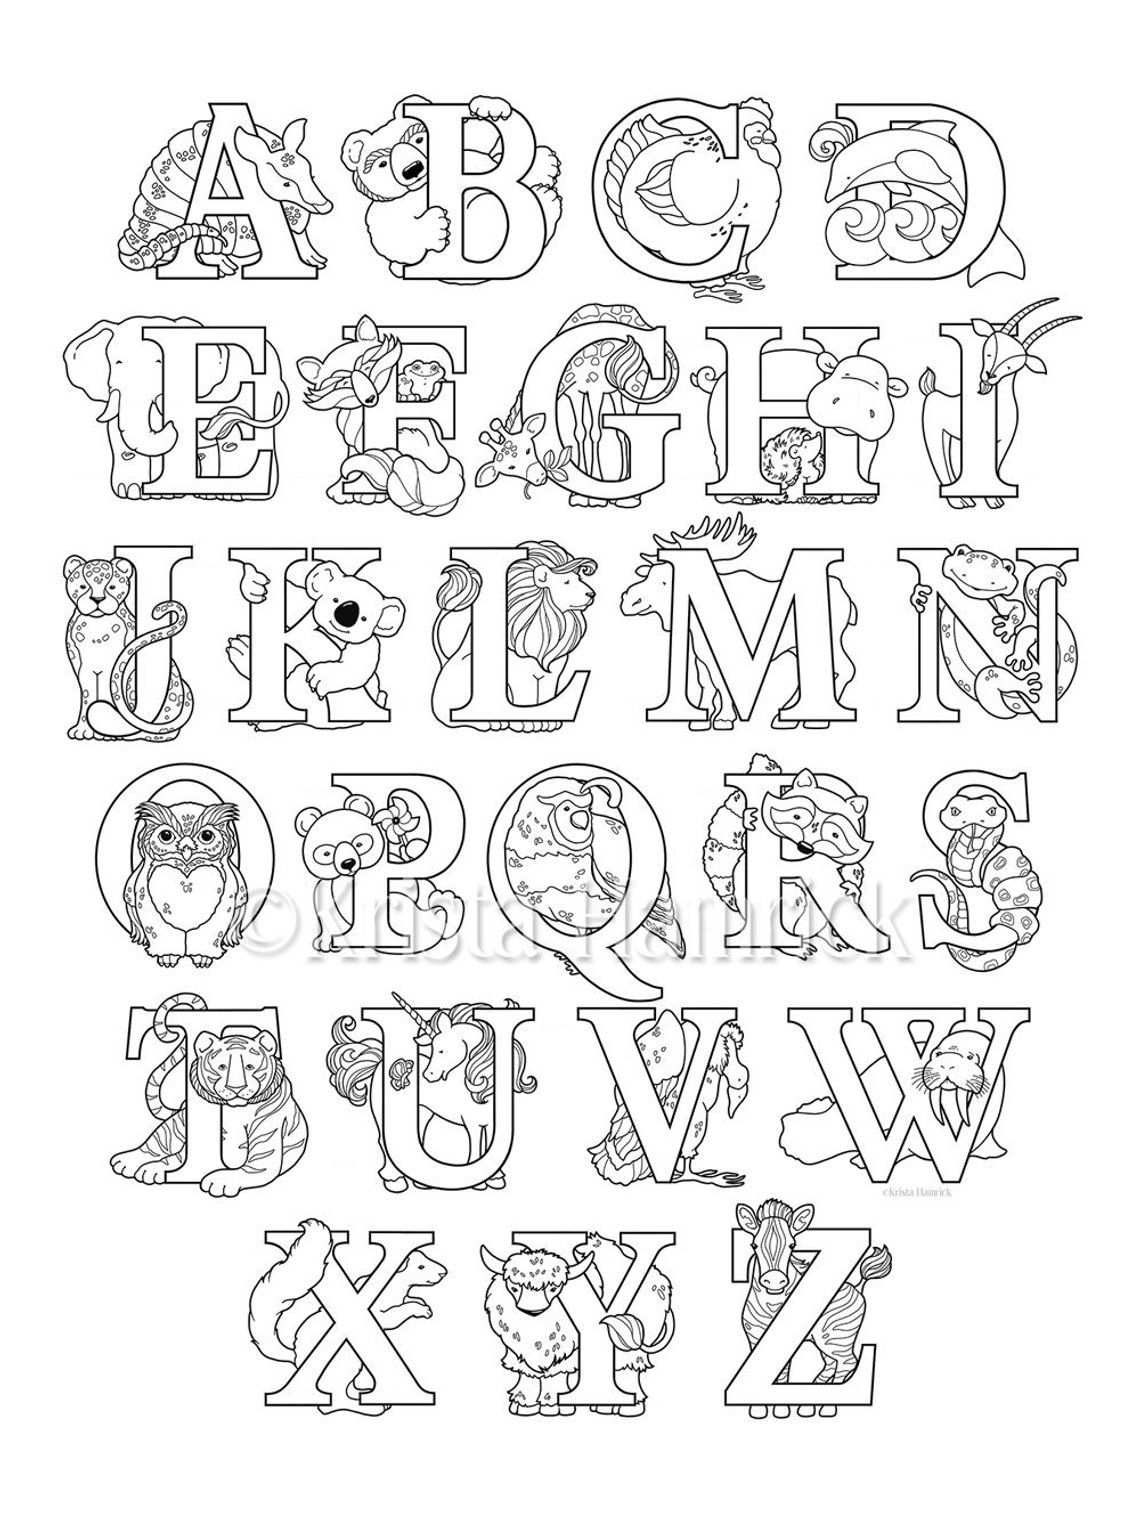 Animal Alphabet A Z Animal Coloring Pages 27 Pages Etsy In 2020 Animal Alphabet Animal Coloring Pages Alphabet Coloring Pages